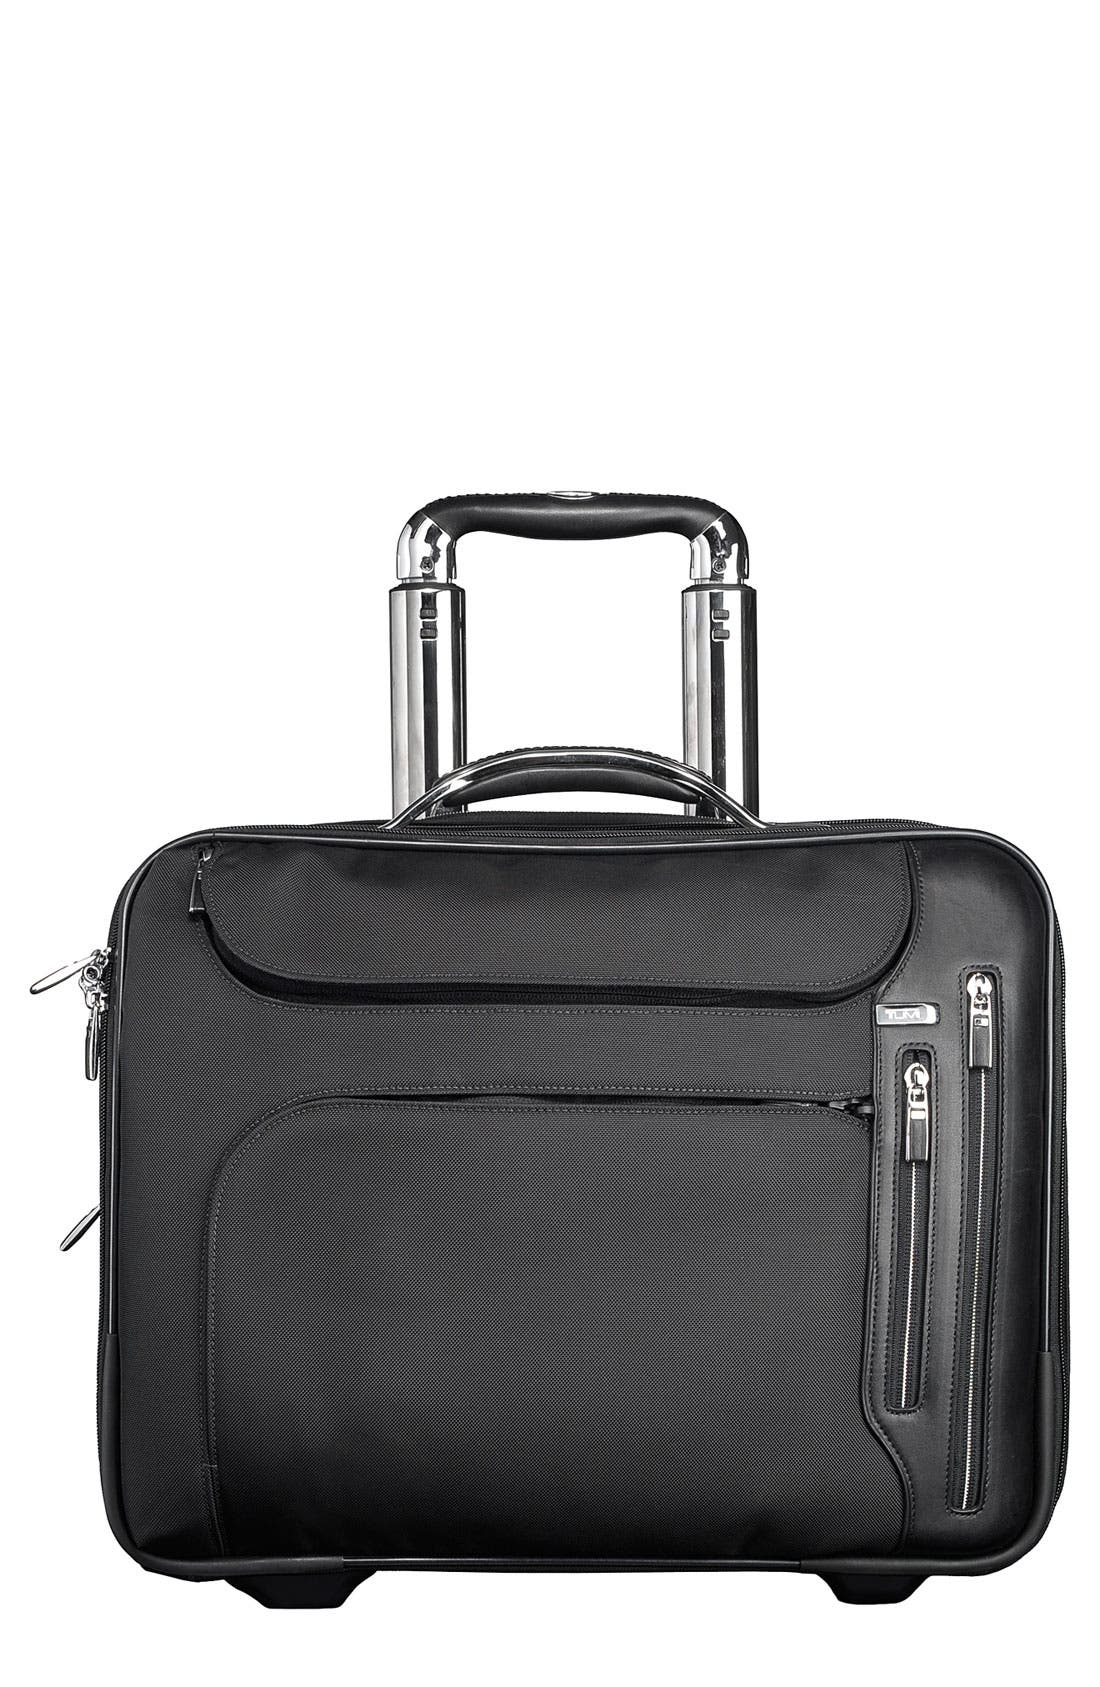 'Arrive - LaGuardia' Wheeled Briefcase with Laptop Insert,                             Main thumbnail 1, color,                             001